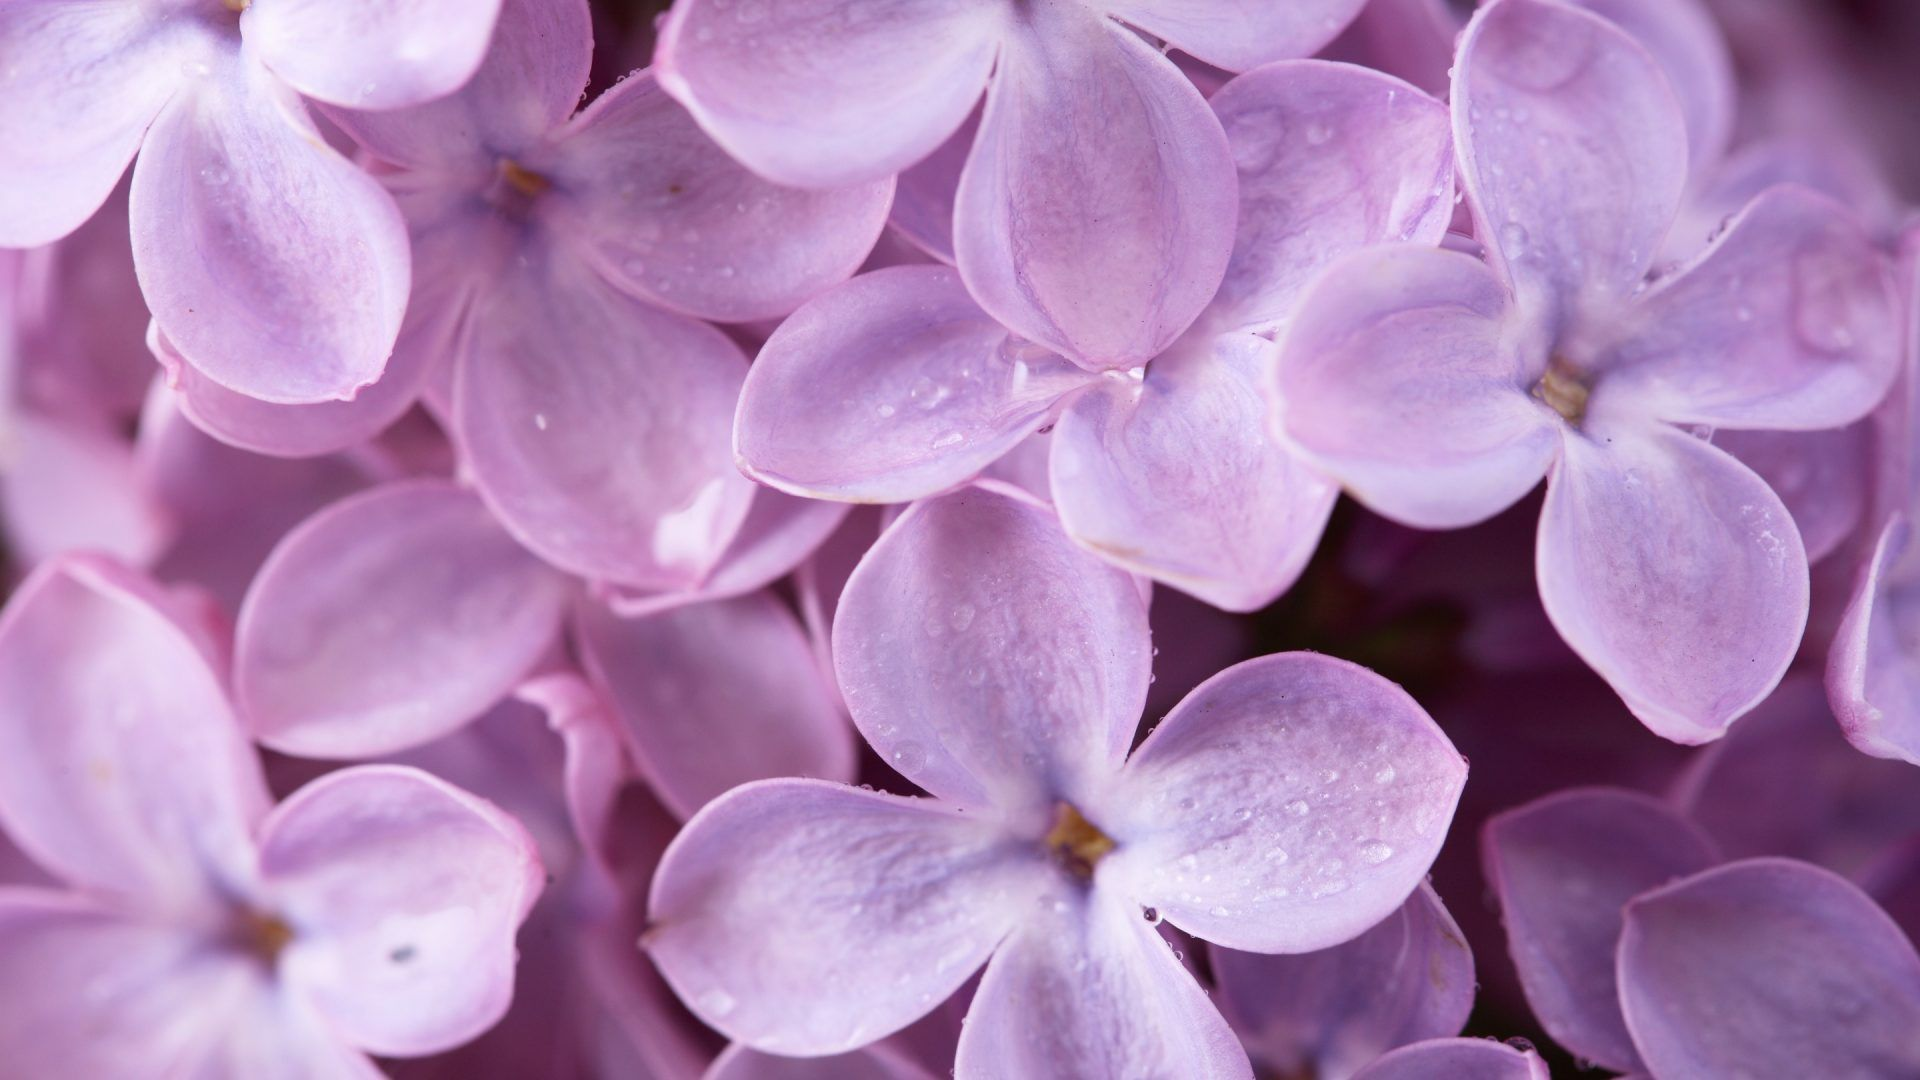 Lilac Tapet Lilacs Purple Flower Skin Texture Pink Spring Wallpaper Screensavers Lilac Flowers Garden Care Lilac